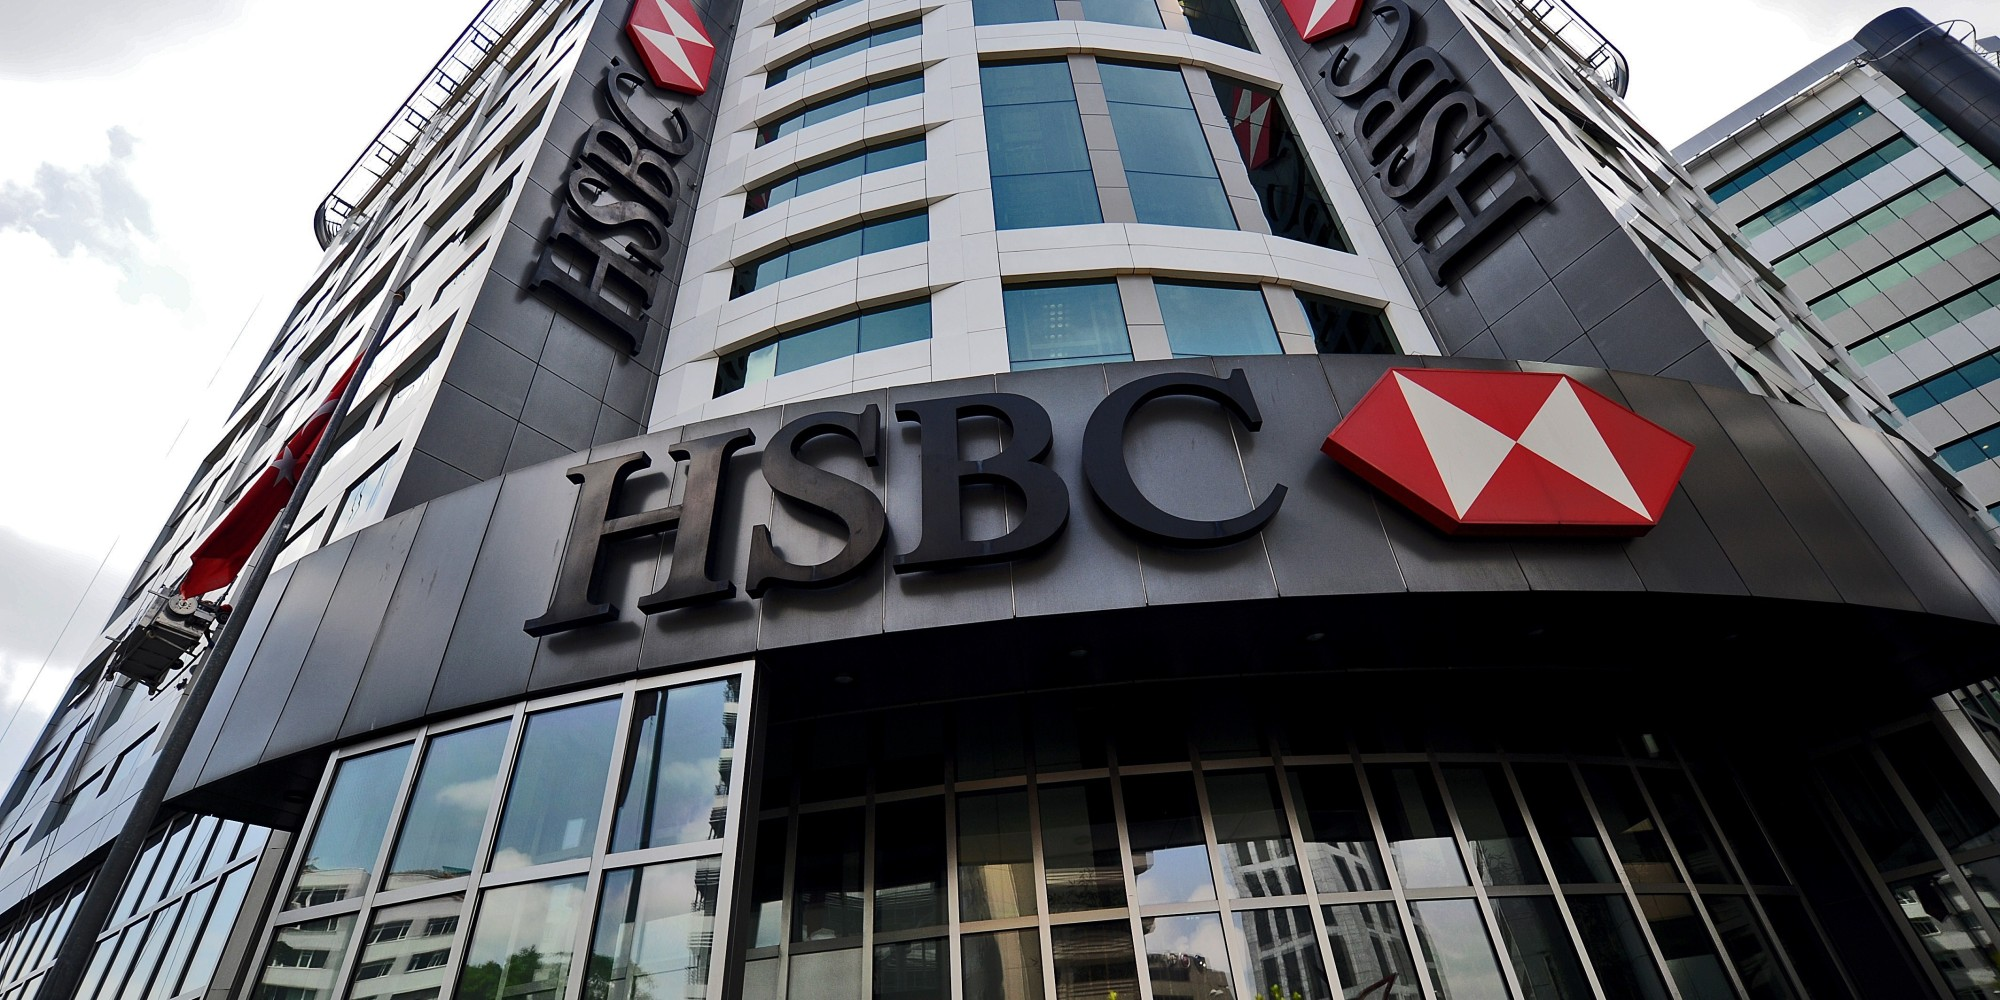 hsbc bank - photo #8